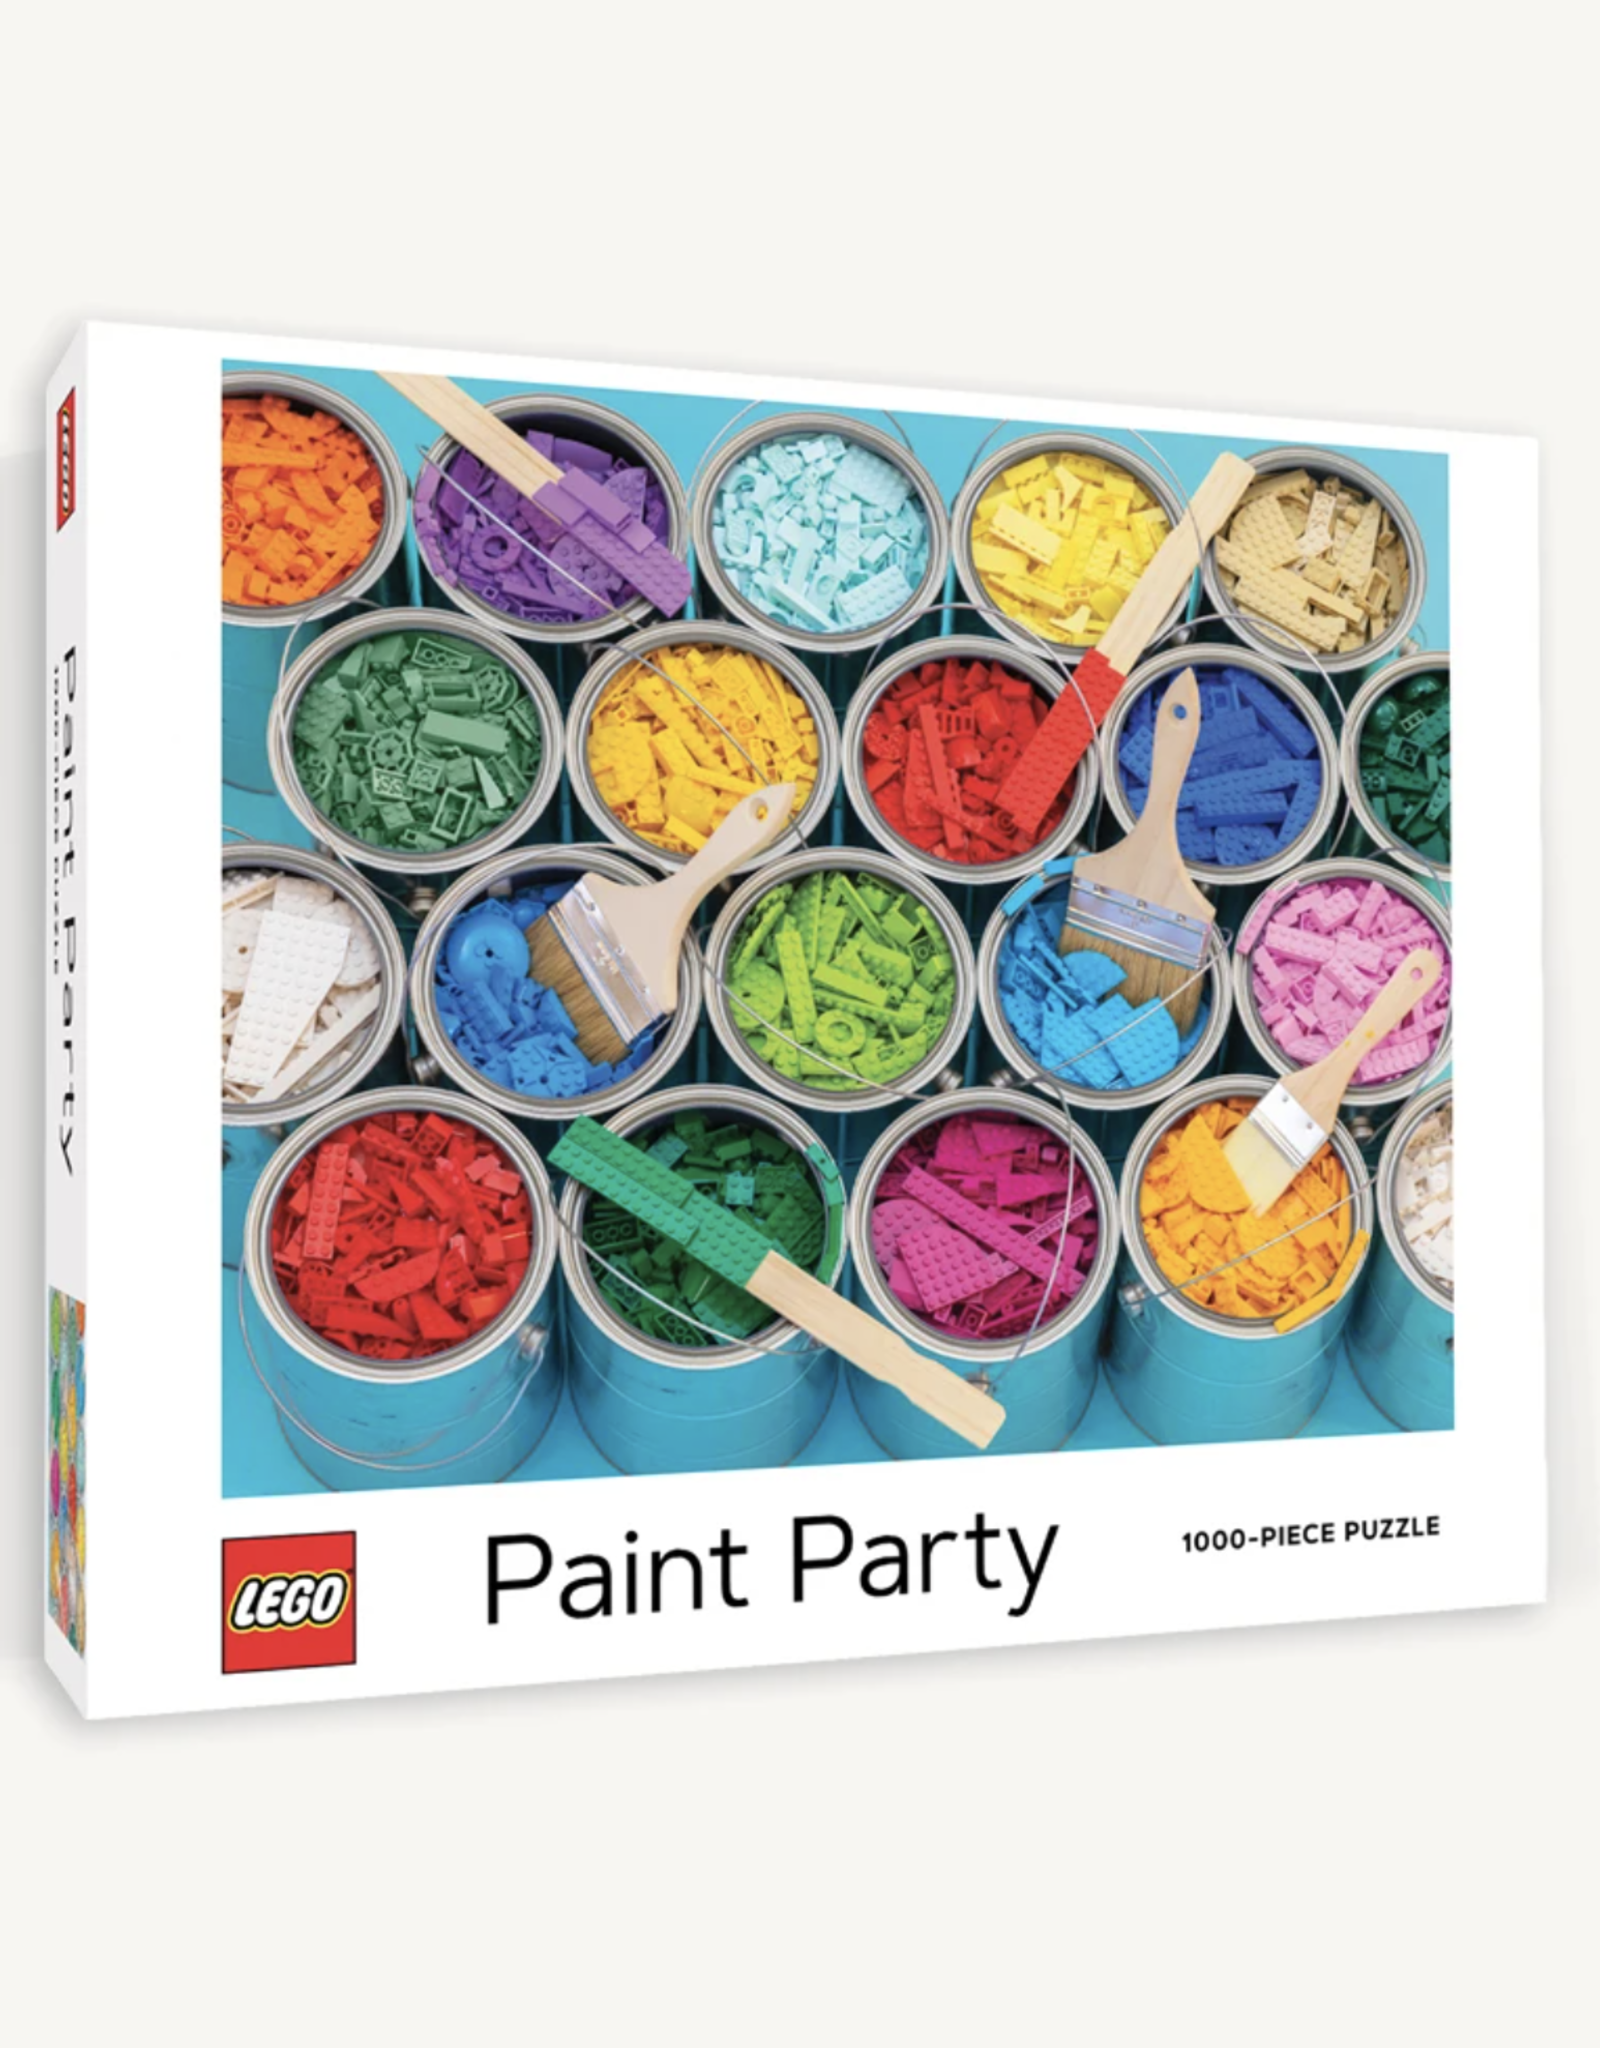 Lego Paint Party Puzzle 1000pcs